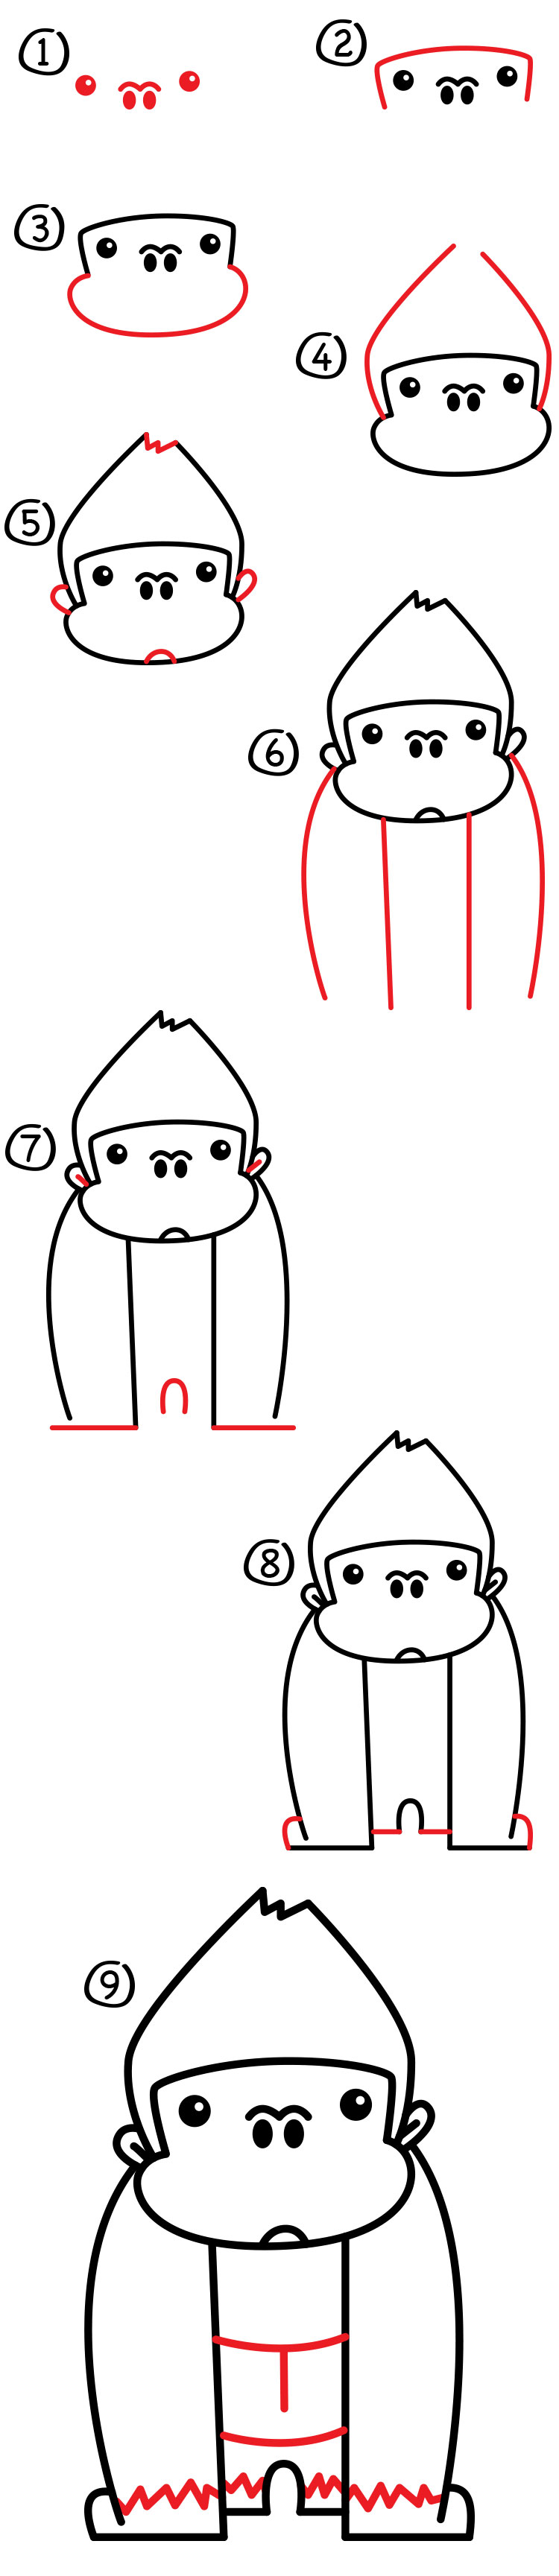 Uncategorized How To Draw A Gorilla Step By Step how to draw a cartoon gorilla art for kids hub